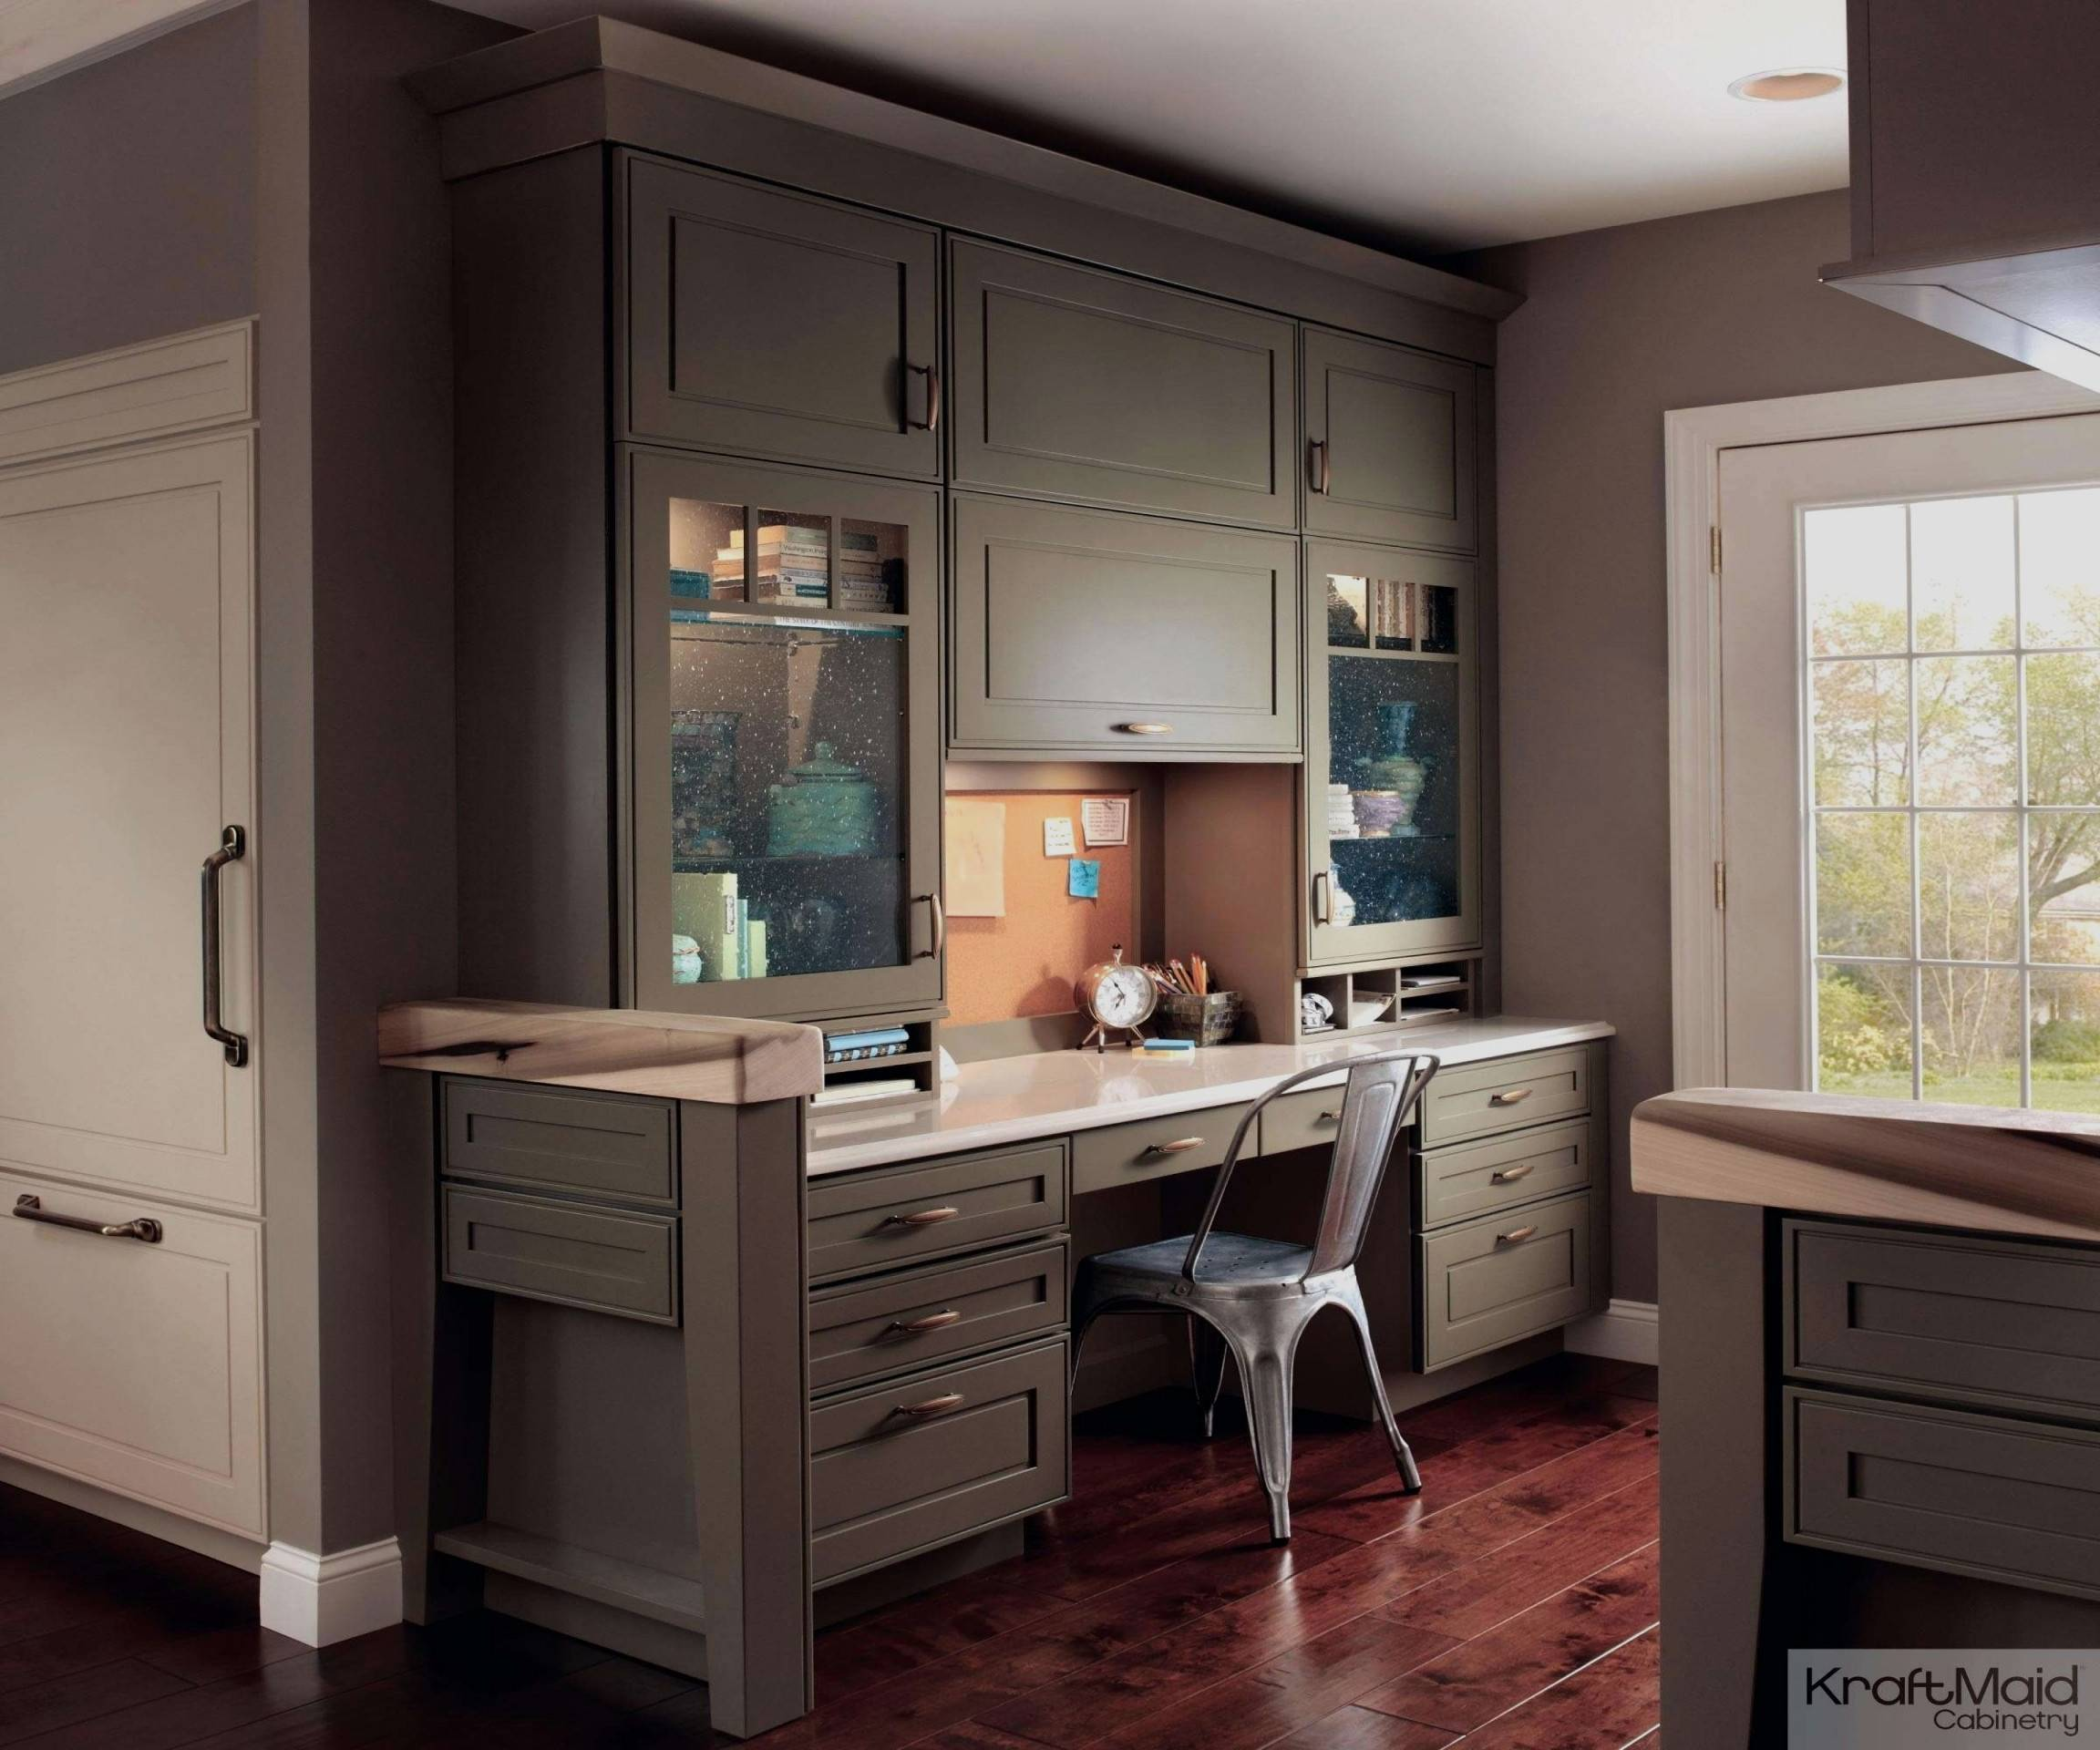 interior pictures of new mobile homes pickled maple kitchen cabinets awesome kitchen cabinet 0d kitchen design ideas redo kitchen cabinets 9007